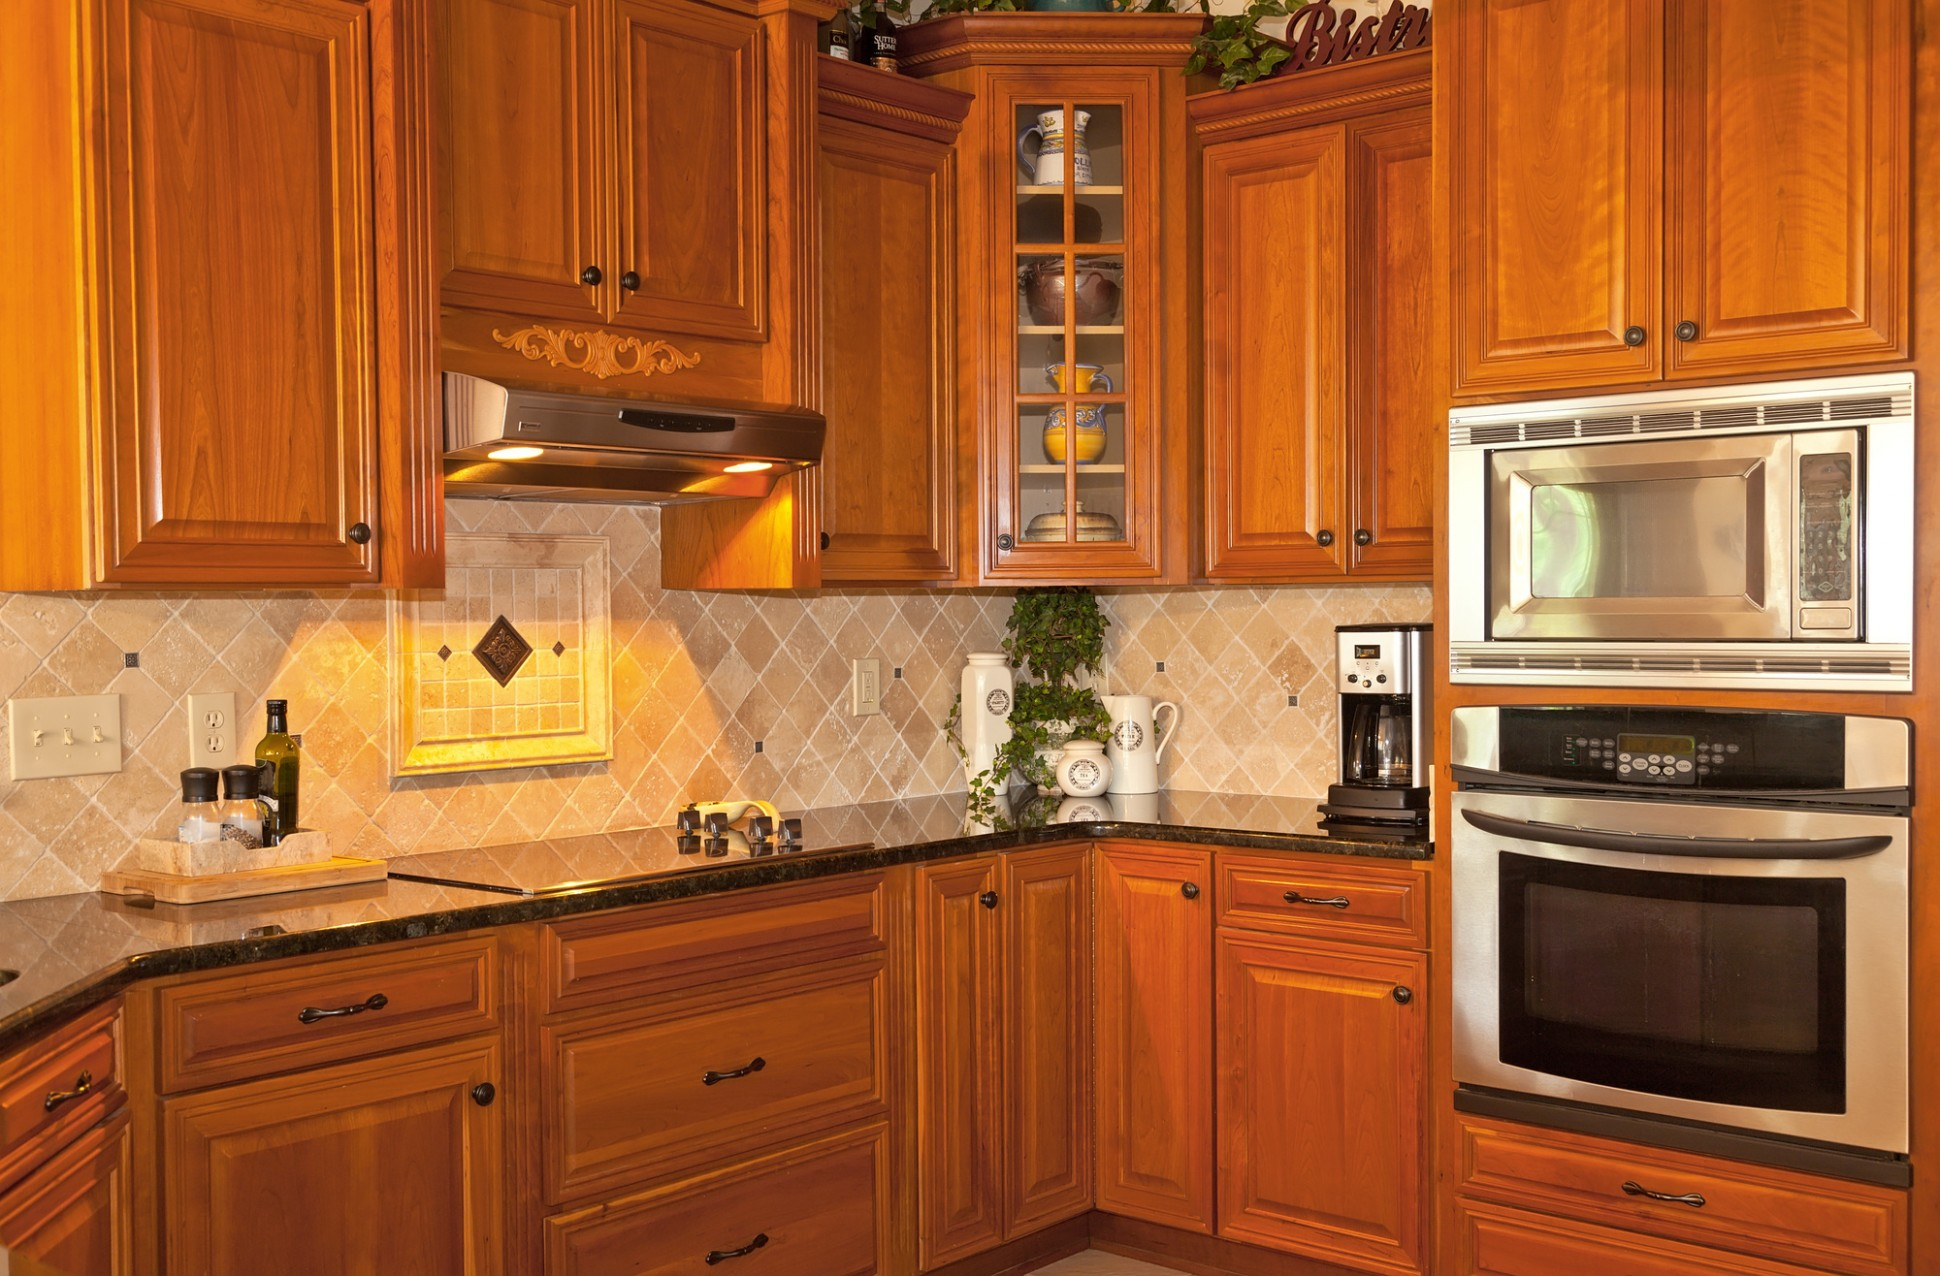 Kitchen Cabinet Dimensions: Your Guide to the Standard Sizes - Standard Height For Kitchen Cabinets Above Counter